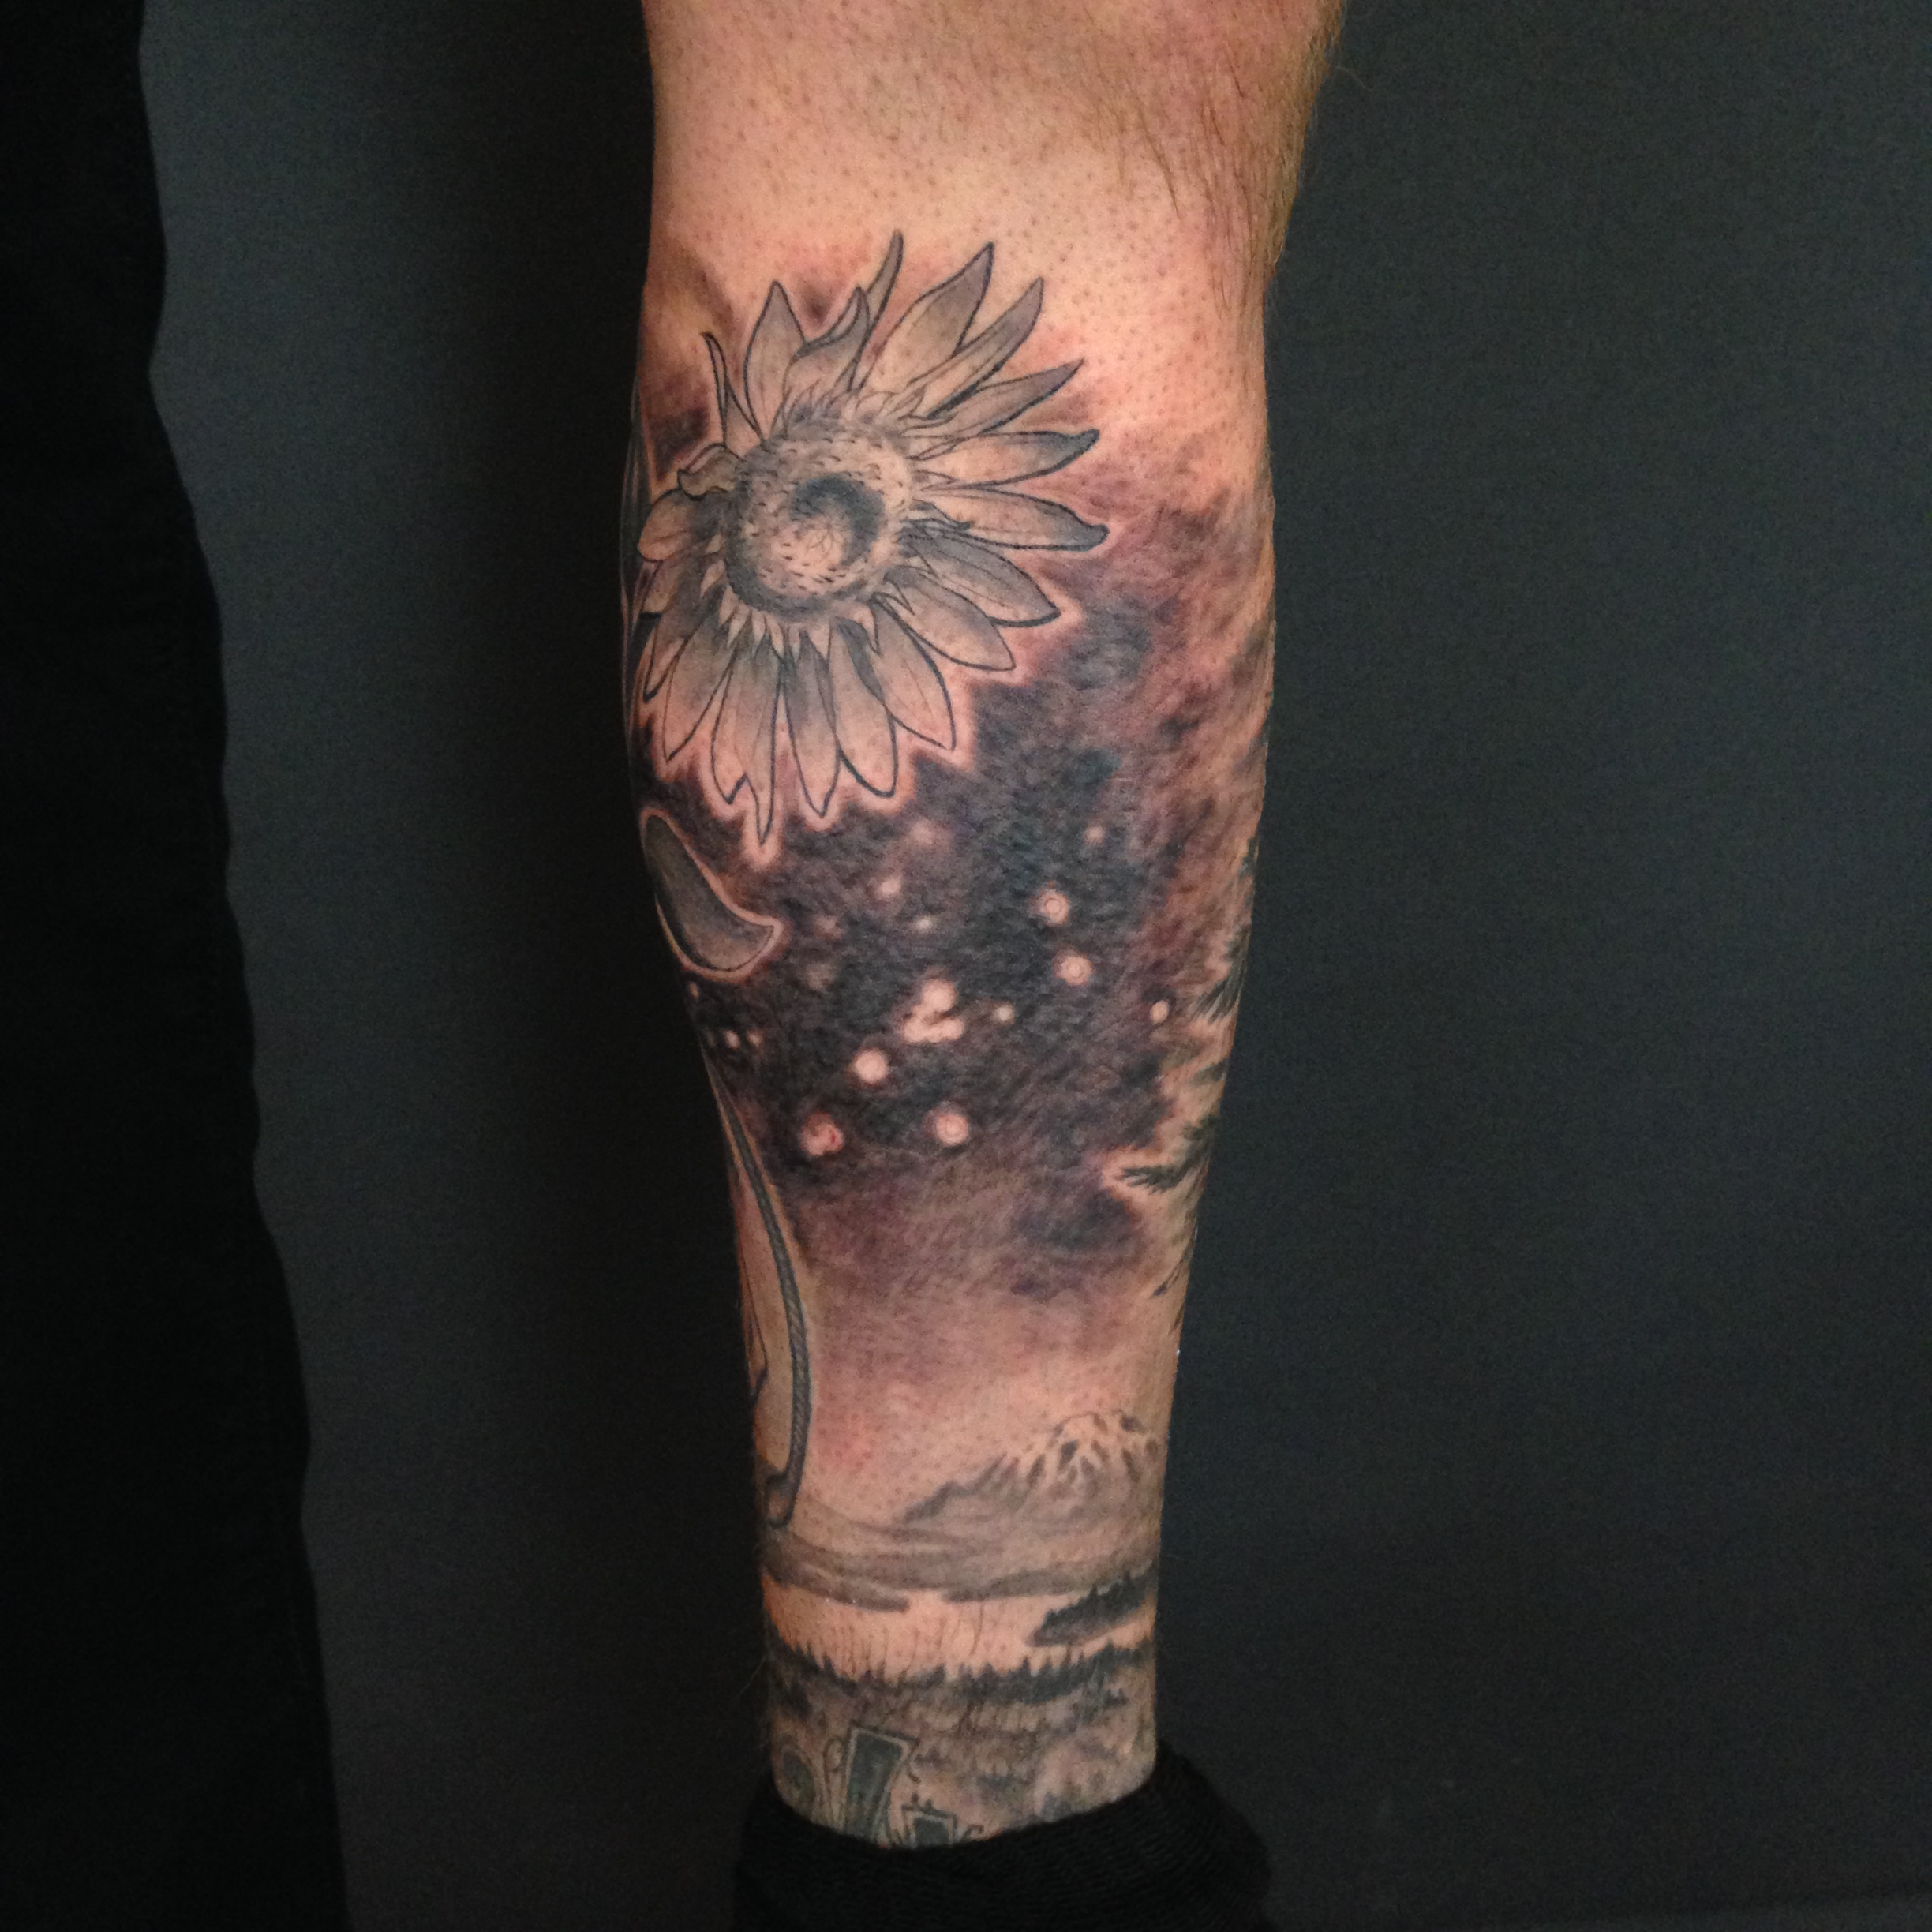 bg Justin Turkus Philadelphia fine line lettering best tattoo Artist constellation sunflower peter pugit sound fullsize.jpg